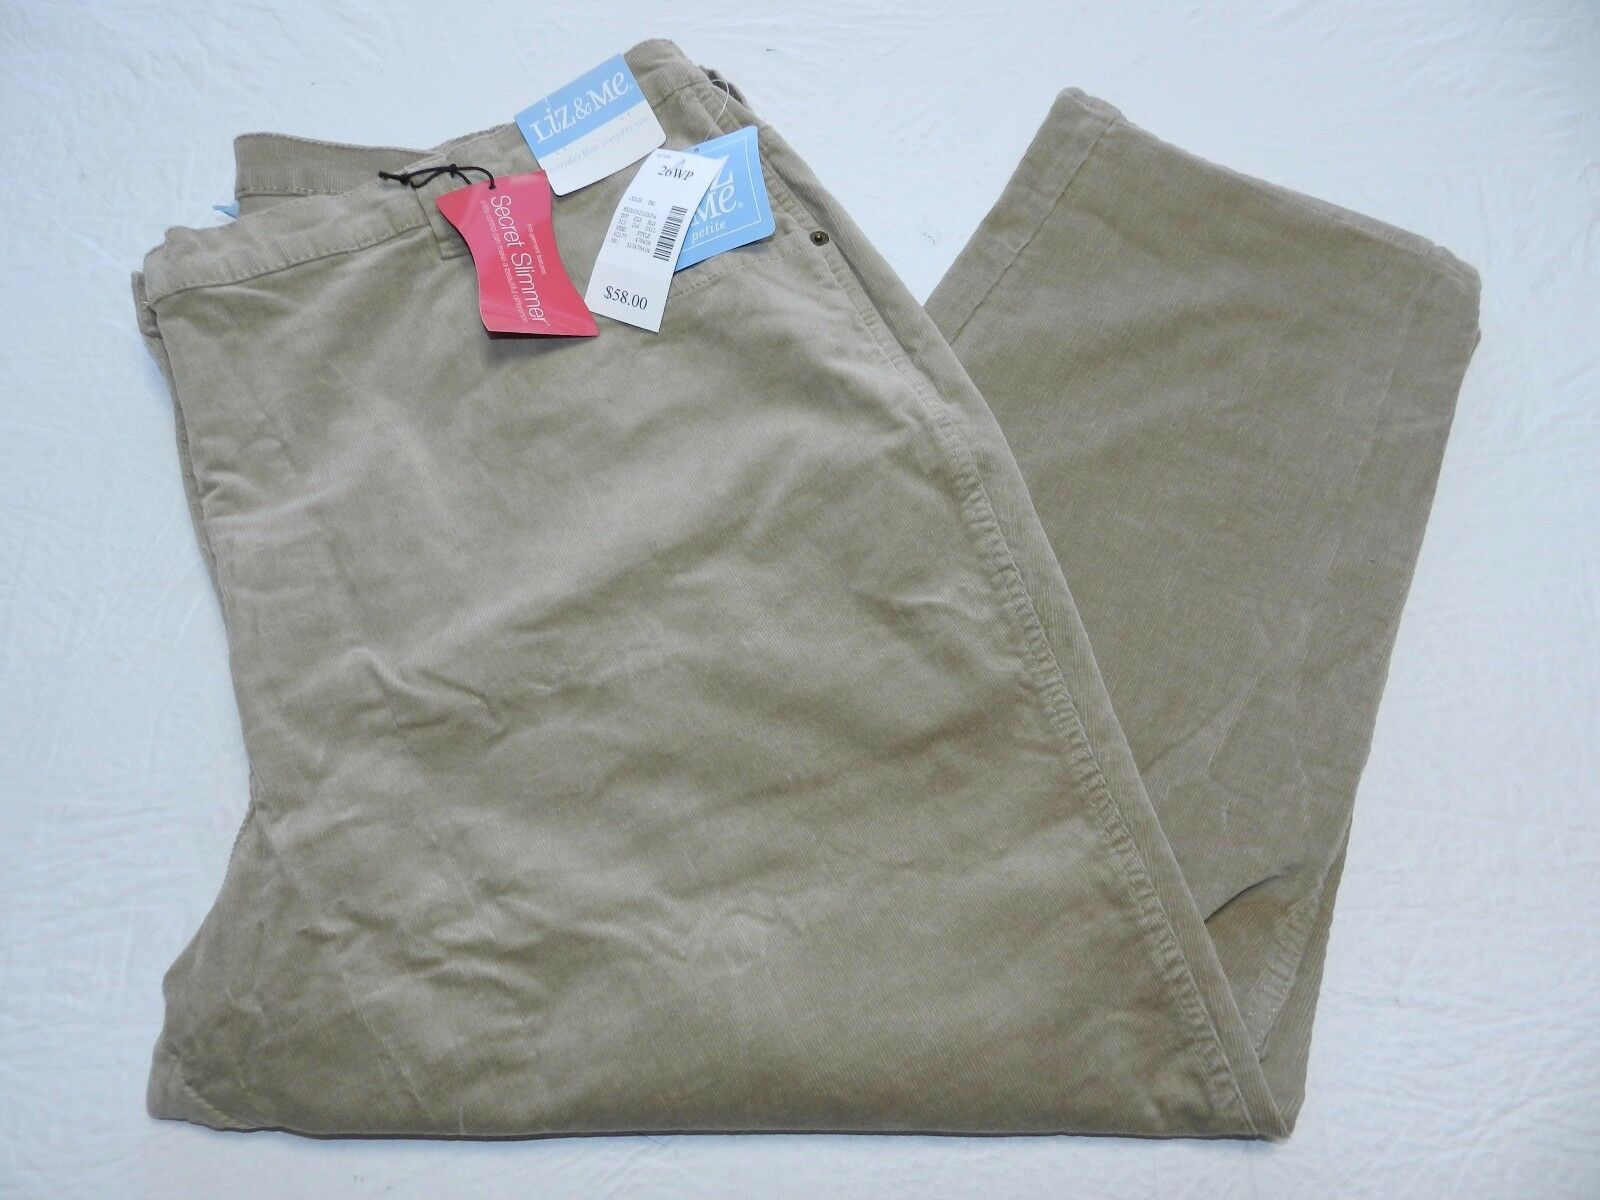 58 WOMENS tan corduroy secret slimmer PANTS = LIZ & ME size 26WP petite = km95